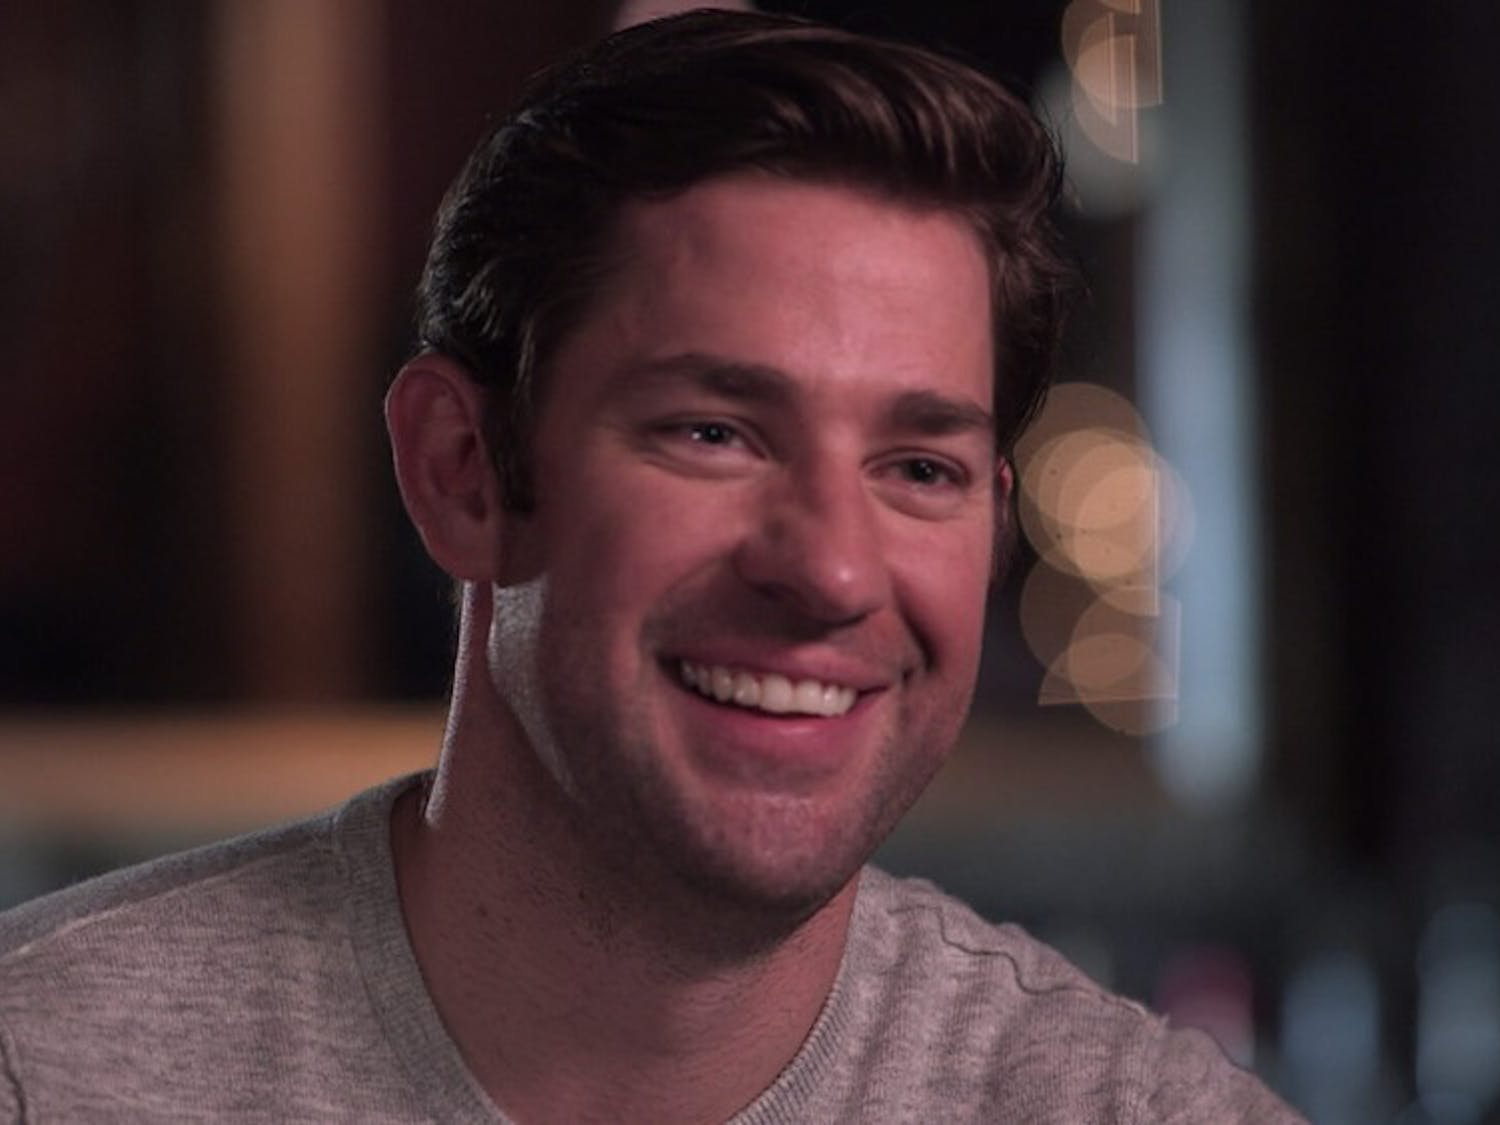 """From """"The Office"""" to """"A Quiet Place,"""" John Krasinski is arecent example of someone who has achieved success in multiple genres [and mediums]."""